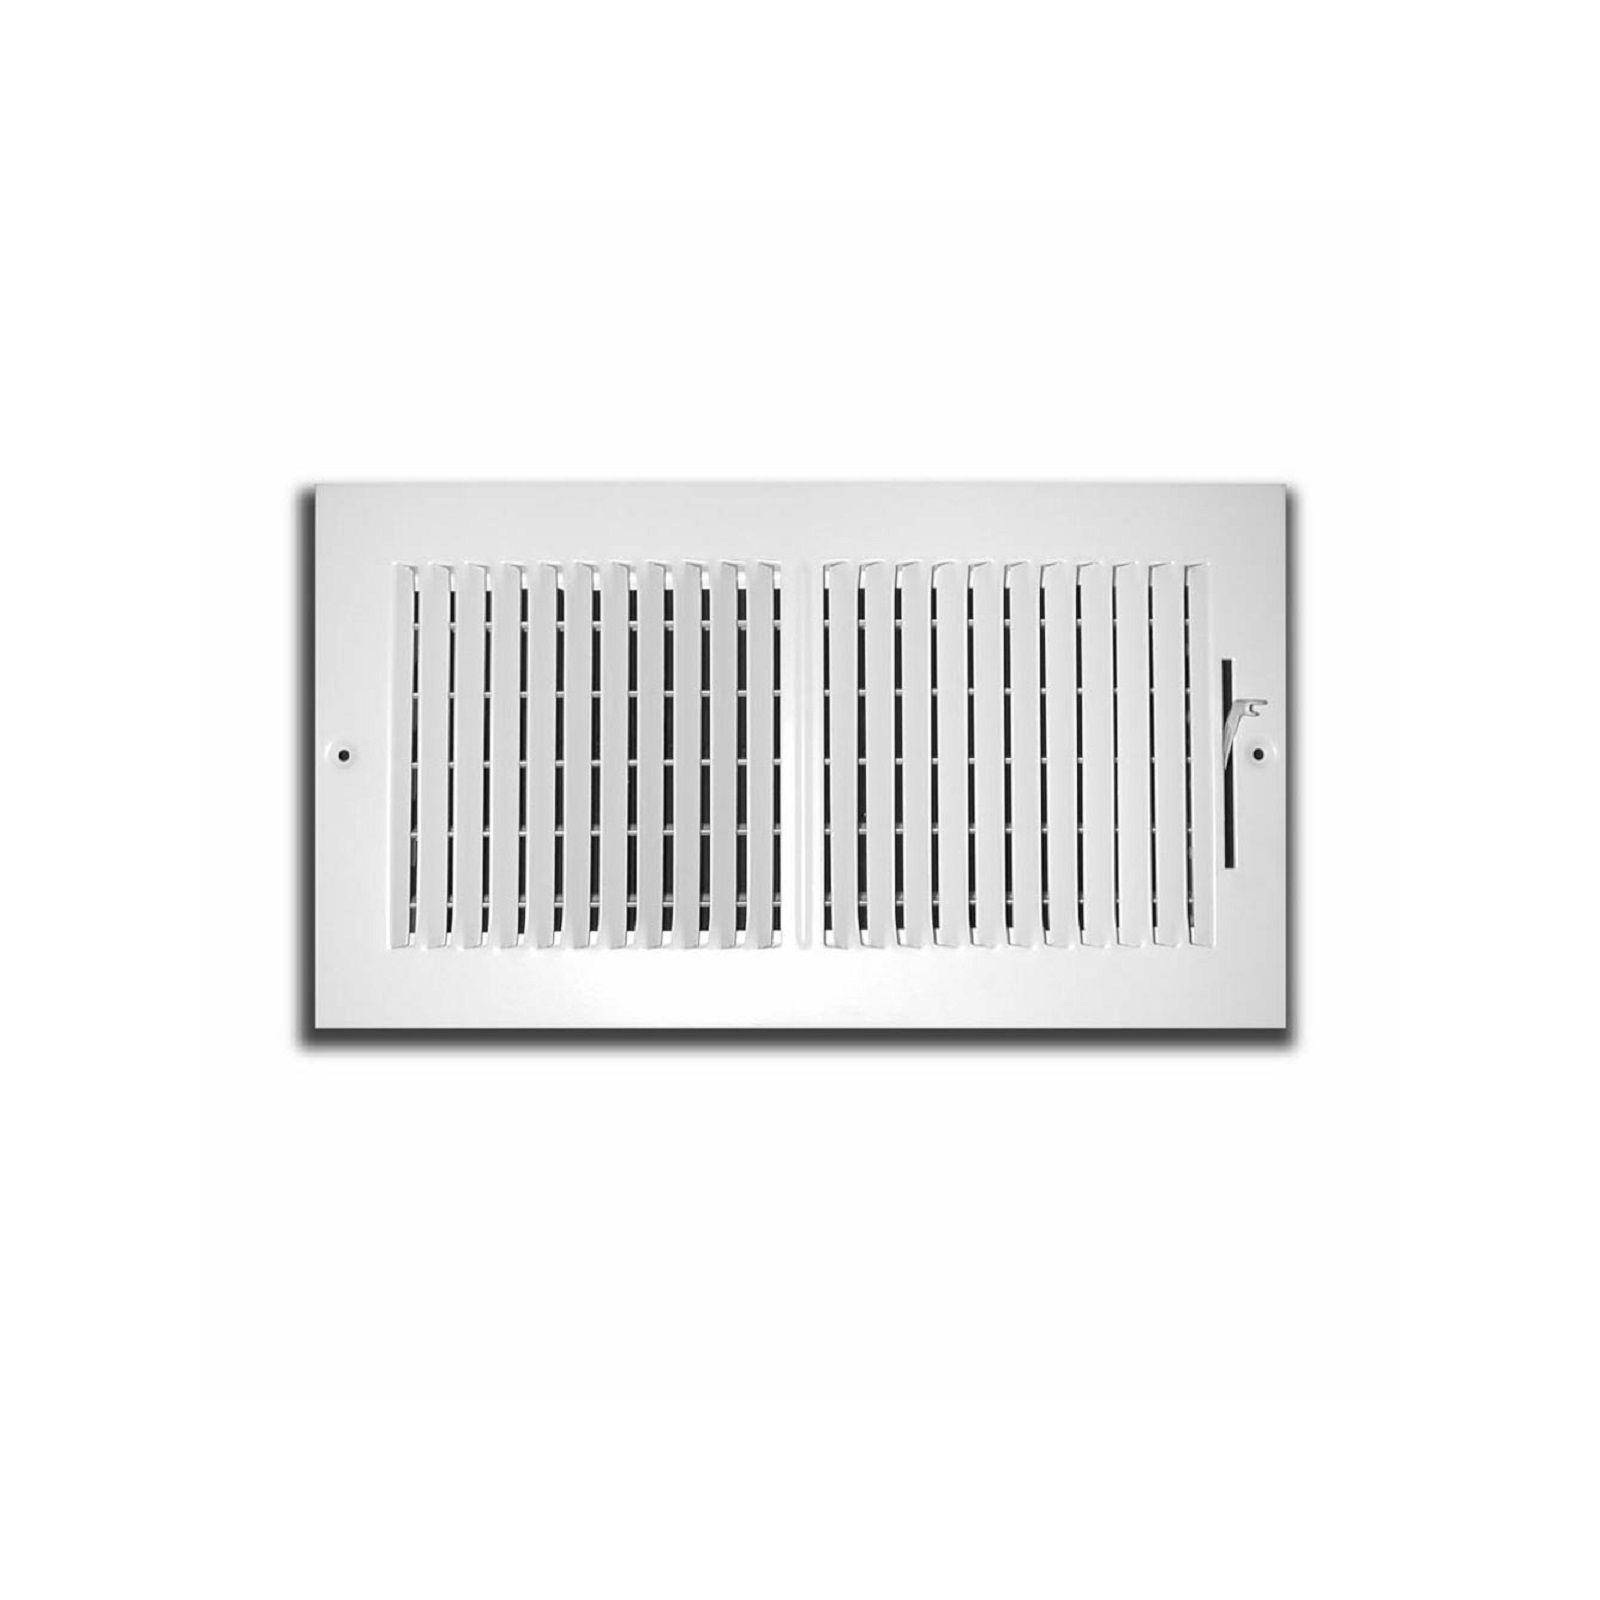 "TRUaire 102M 10X04 - Stamped Steel 2-Way Wall/Ceiling Register, 10"" X 04"""